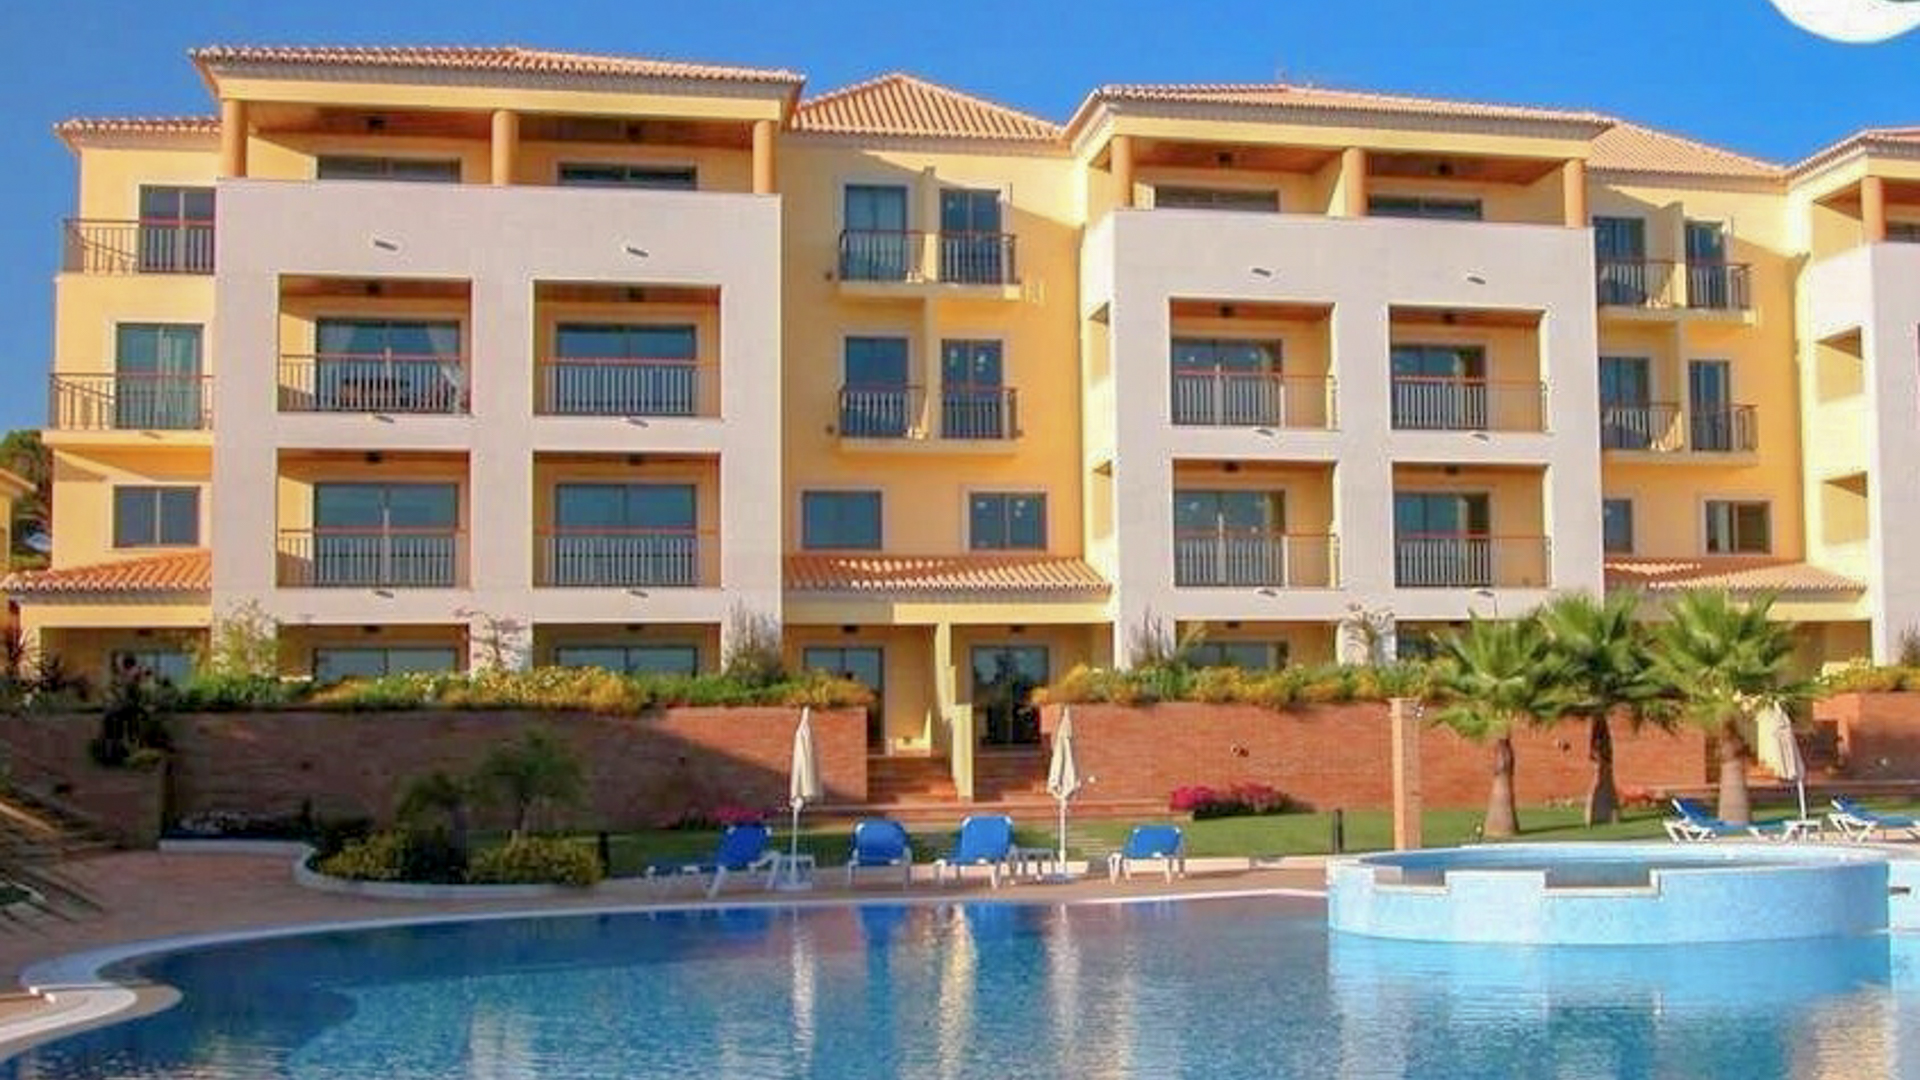 2 Bedroom Apartment in Vilamoura with coastal views | S1585